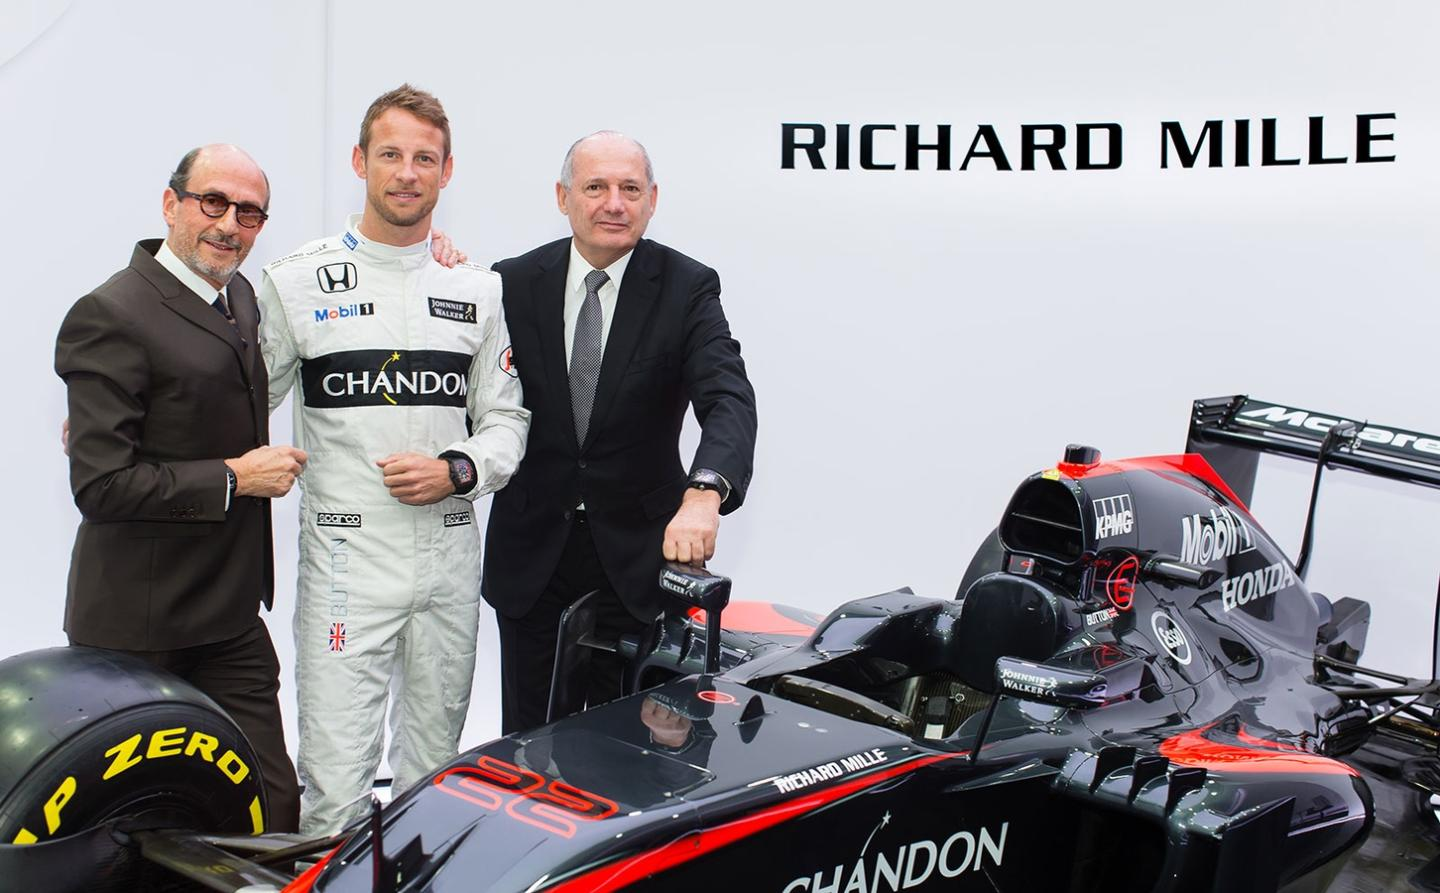 Richard Mille, Jenson Button and McLaren CEO Ron Dennis announcing the 2 brands' 10-year partnership.